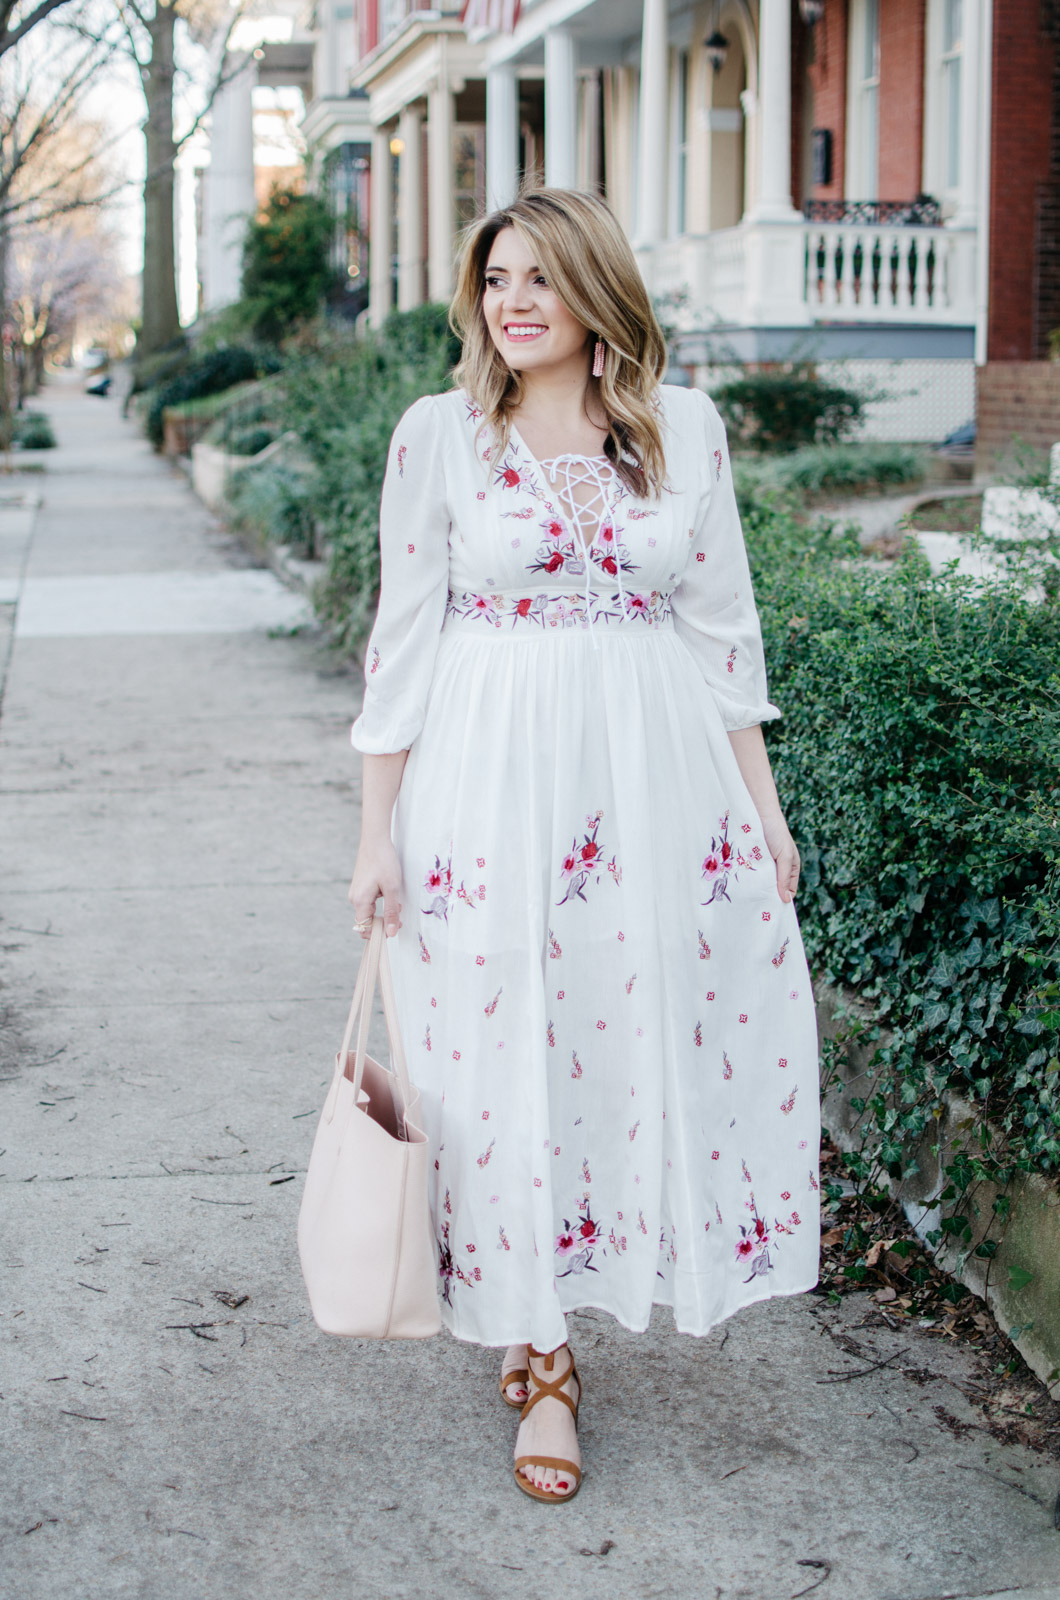 spring boho embroidered dress - click through for more cute Spring outfits or to shop this look! | www.bylaurenm.com